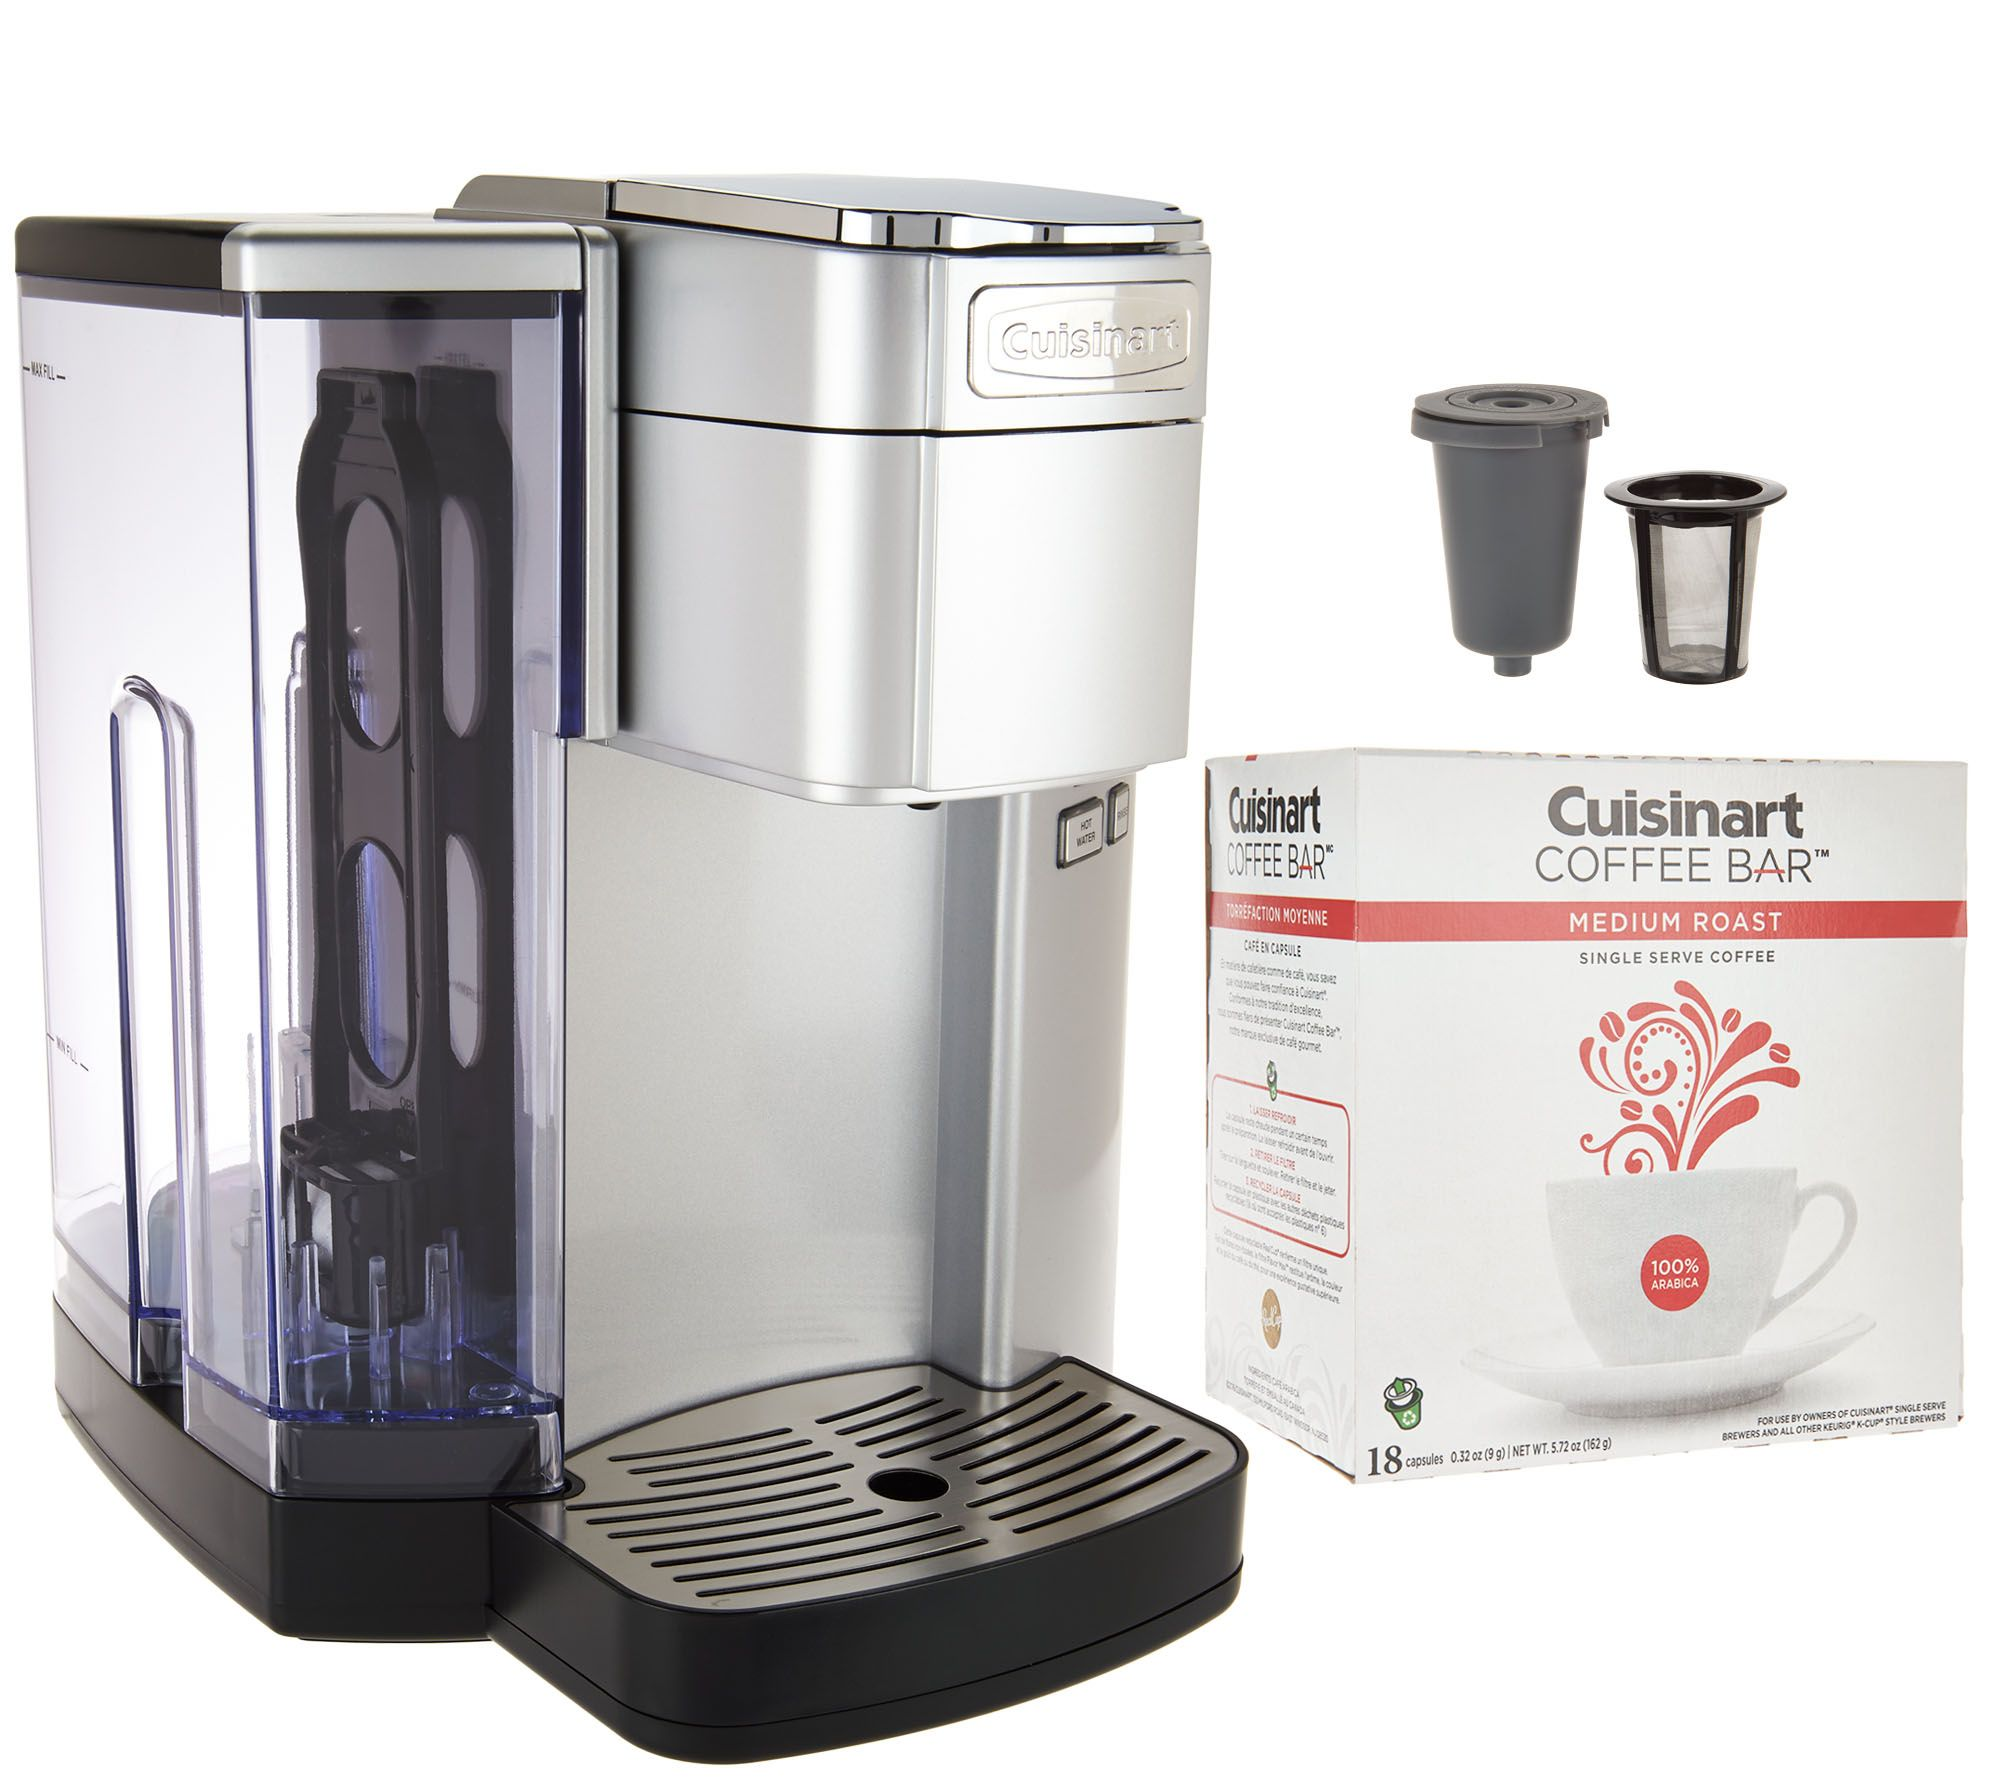 Cuisinart SS10 Single-Serve Coffee Maker w/Barista Cup & 18 Coffee Pods - Page 1 QVC.com